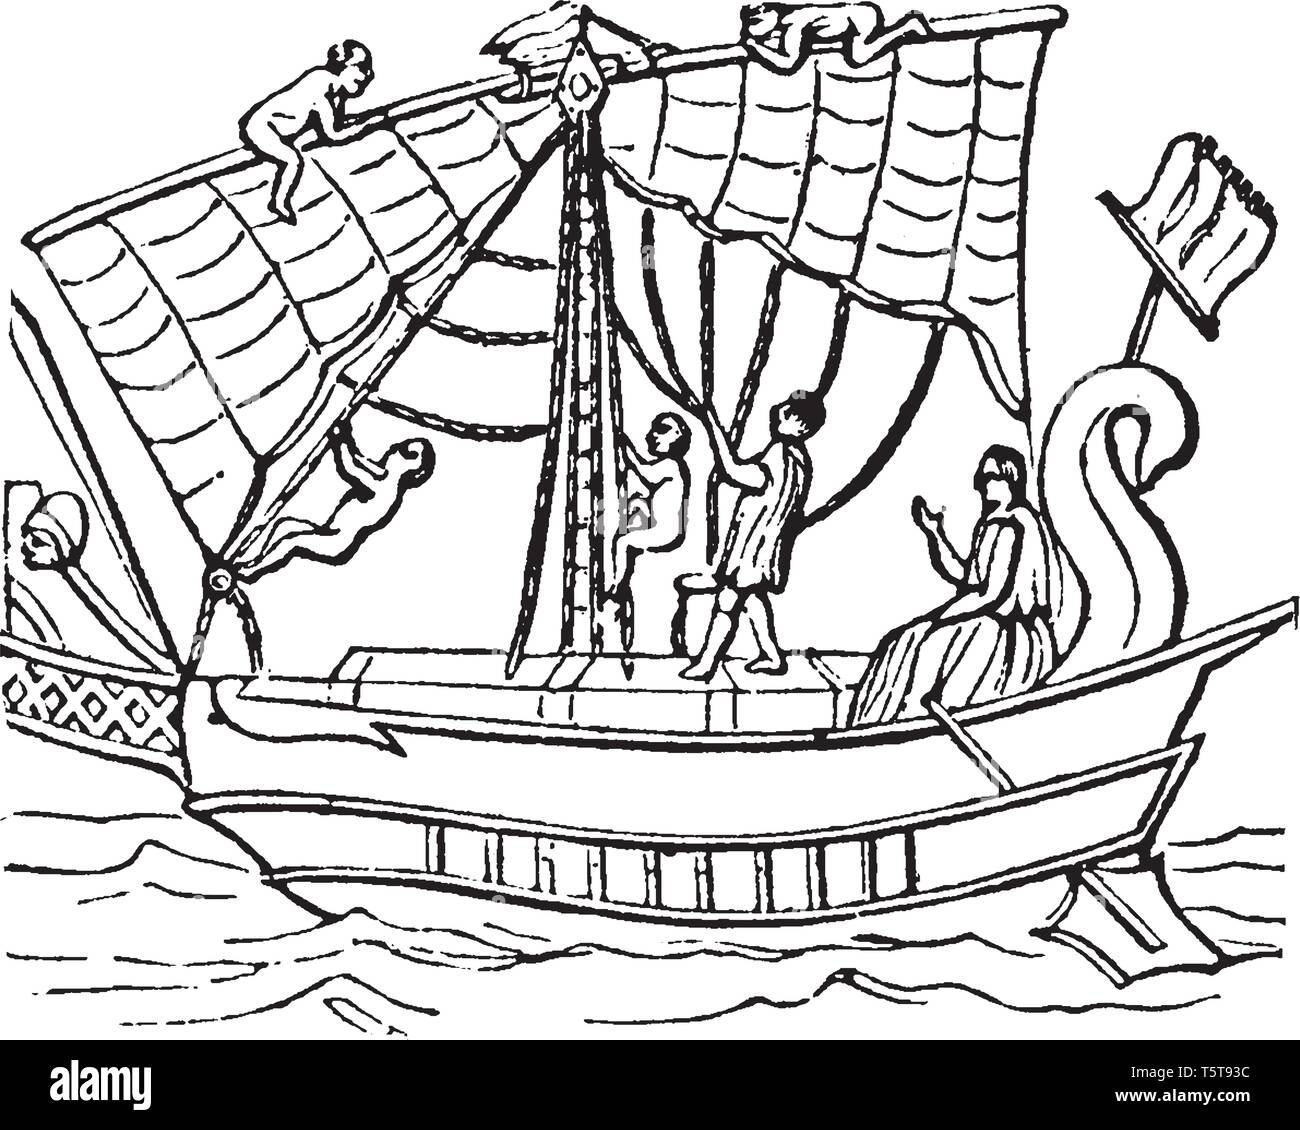 Moneris is the middle part of the deck in most ships of war appears to have been raised above the bulwark, vintage line drawing or engraving illustrat - Stock Vector